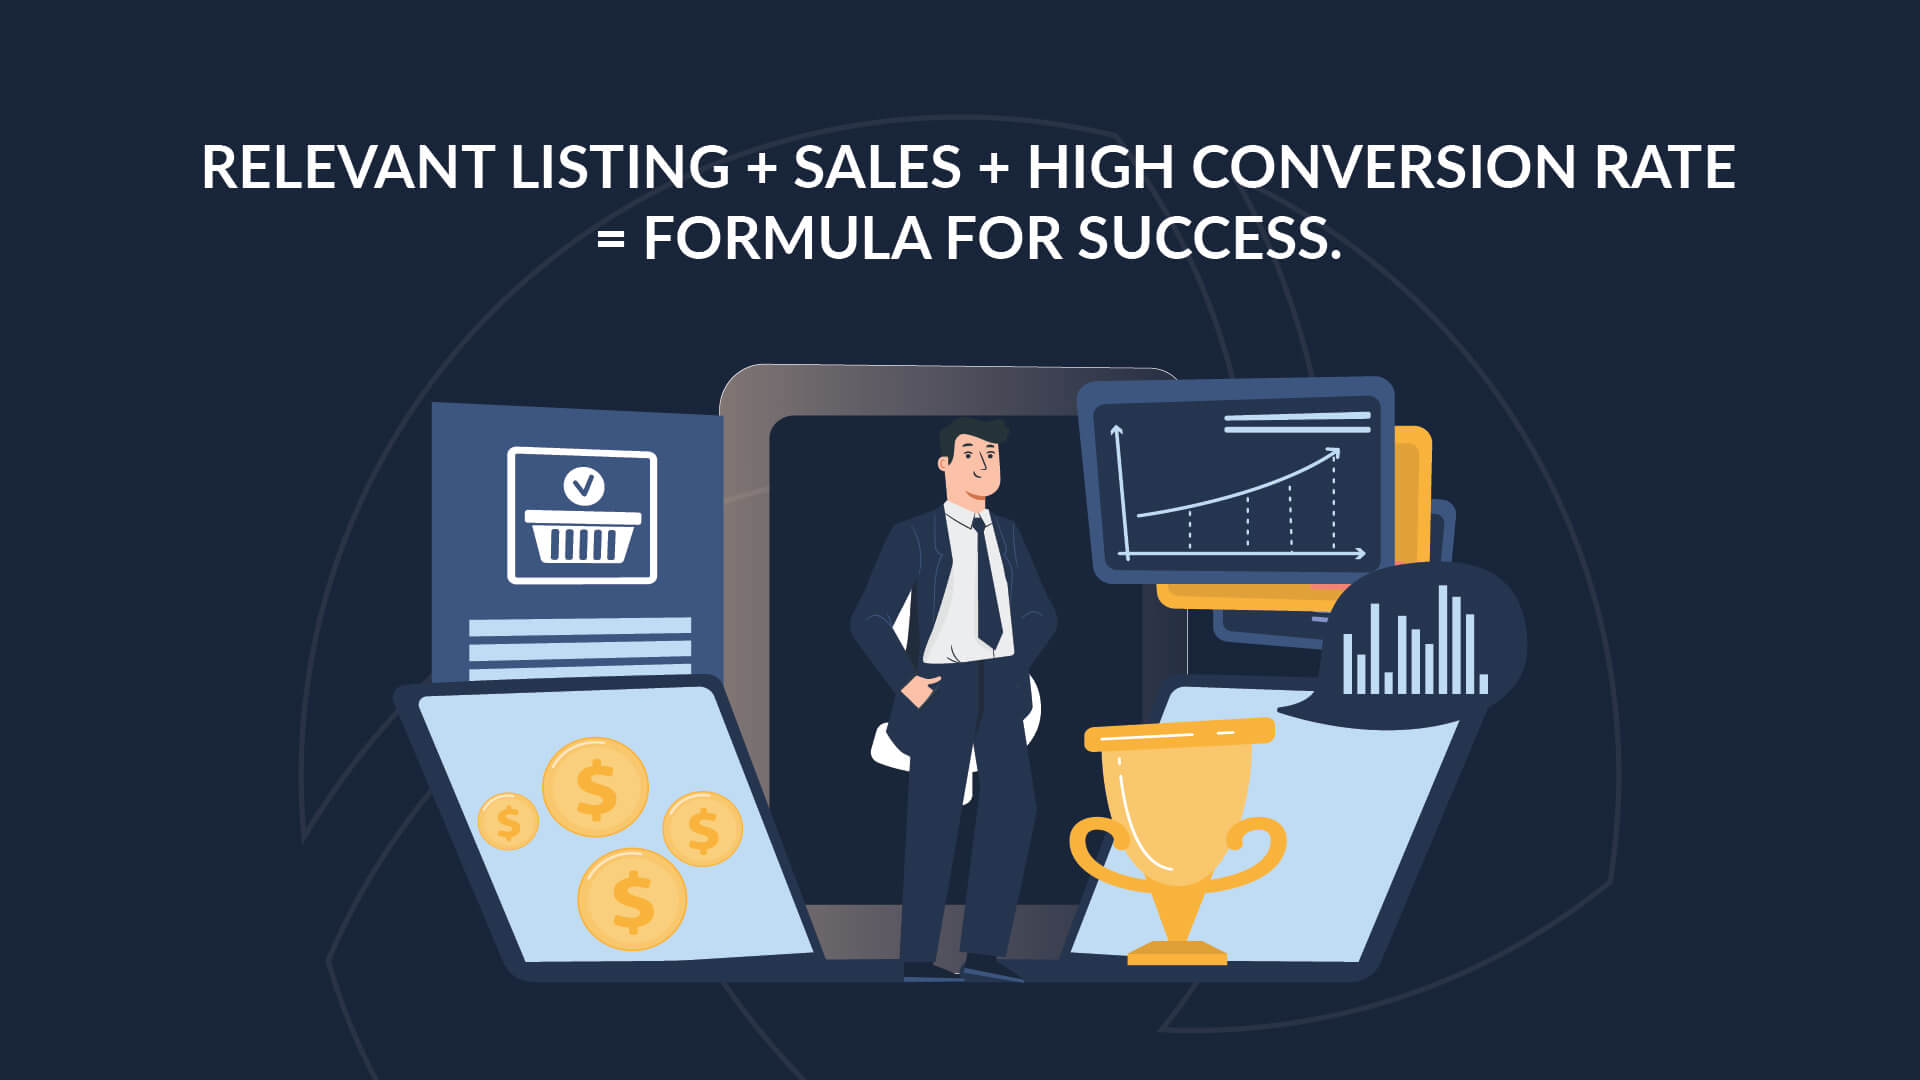 """Image of business man in the middle of charts, coins, trophies, and other images of success. Caption: """"Relevant listing + sales + high conversion rate  = formula for success:."""